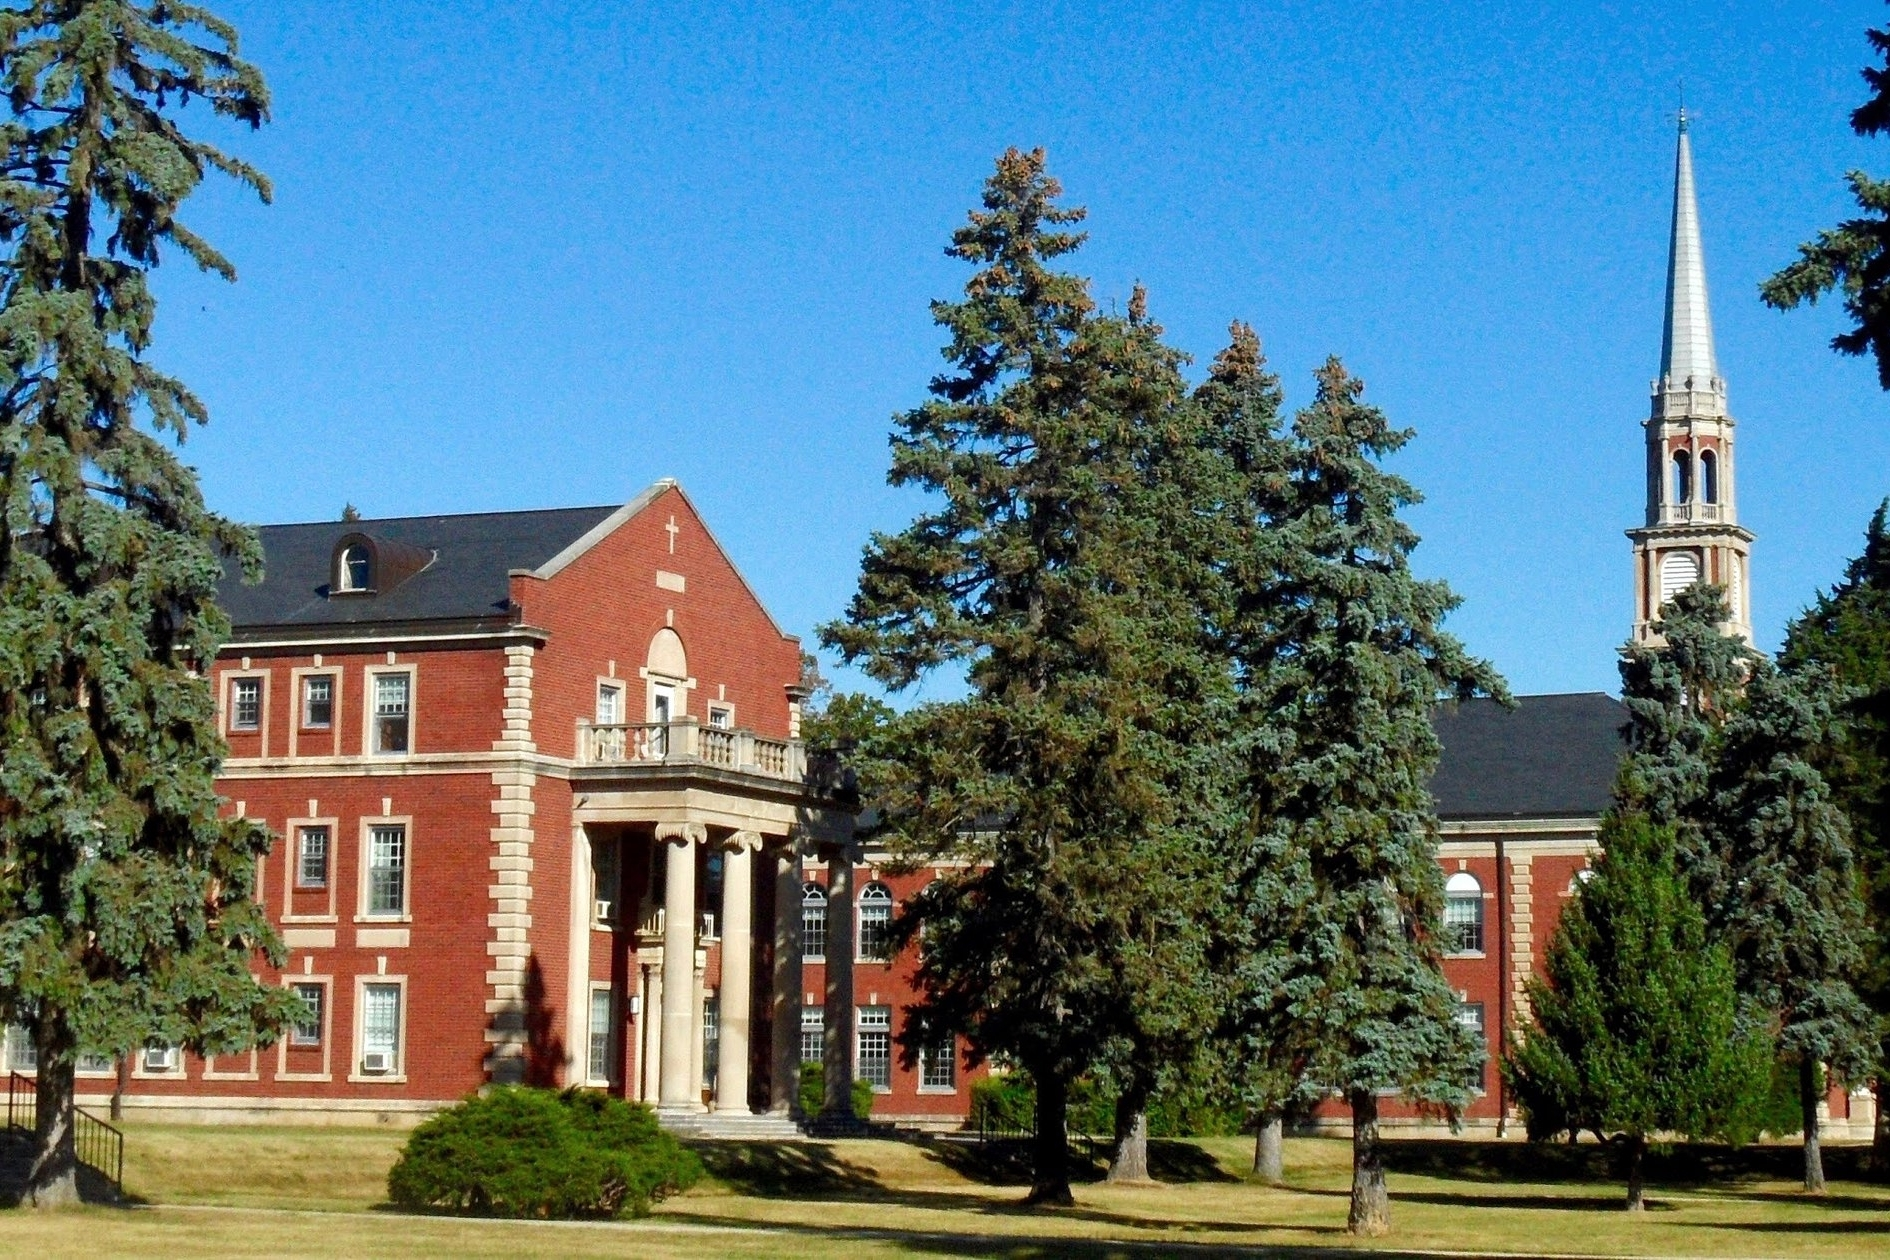 Conference 2019 - NAAPE hosts an international conference annually in the October. The next conference of the society will take place from October 25th to 27th, 2019 on the grounds of the beautiful University of St. Mary of the Lake, just outside of Chicago. To submit or register, click the button below.